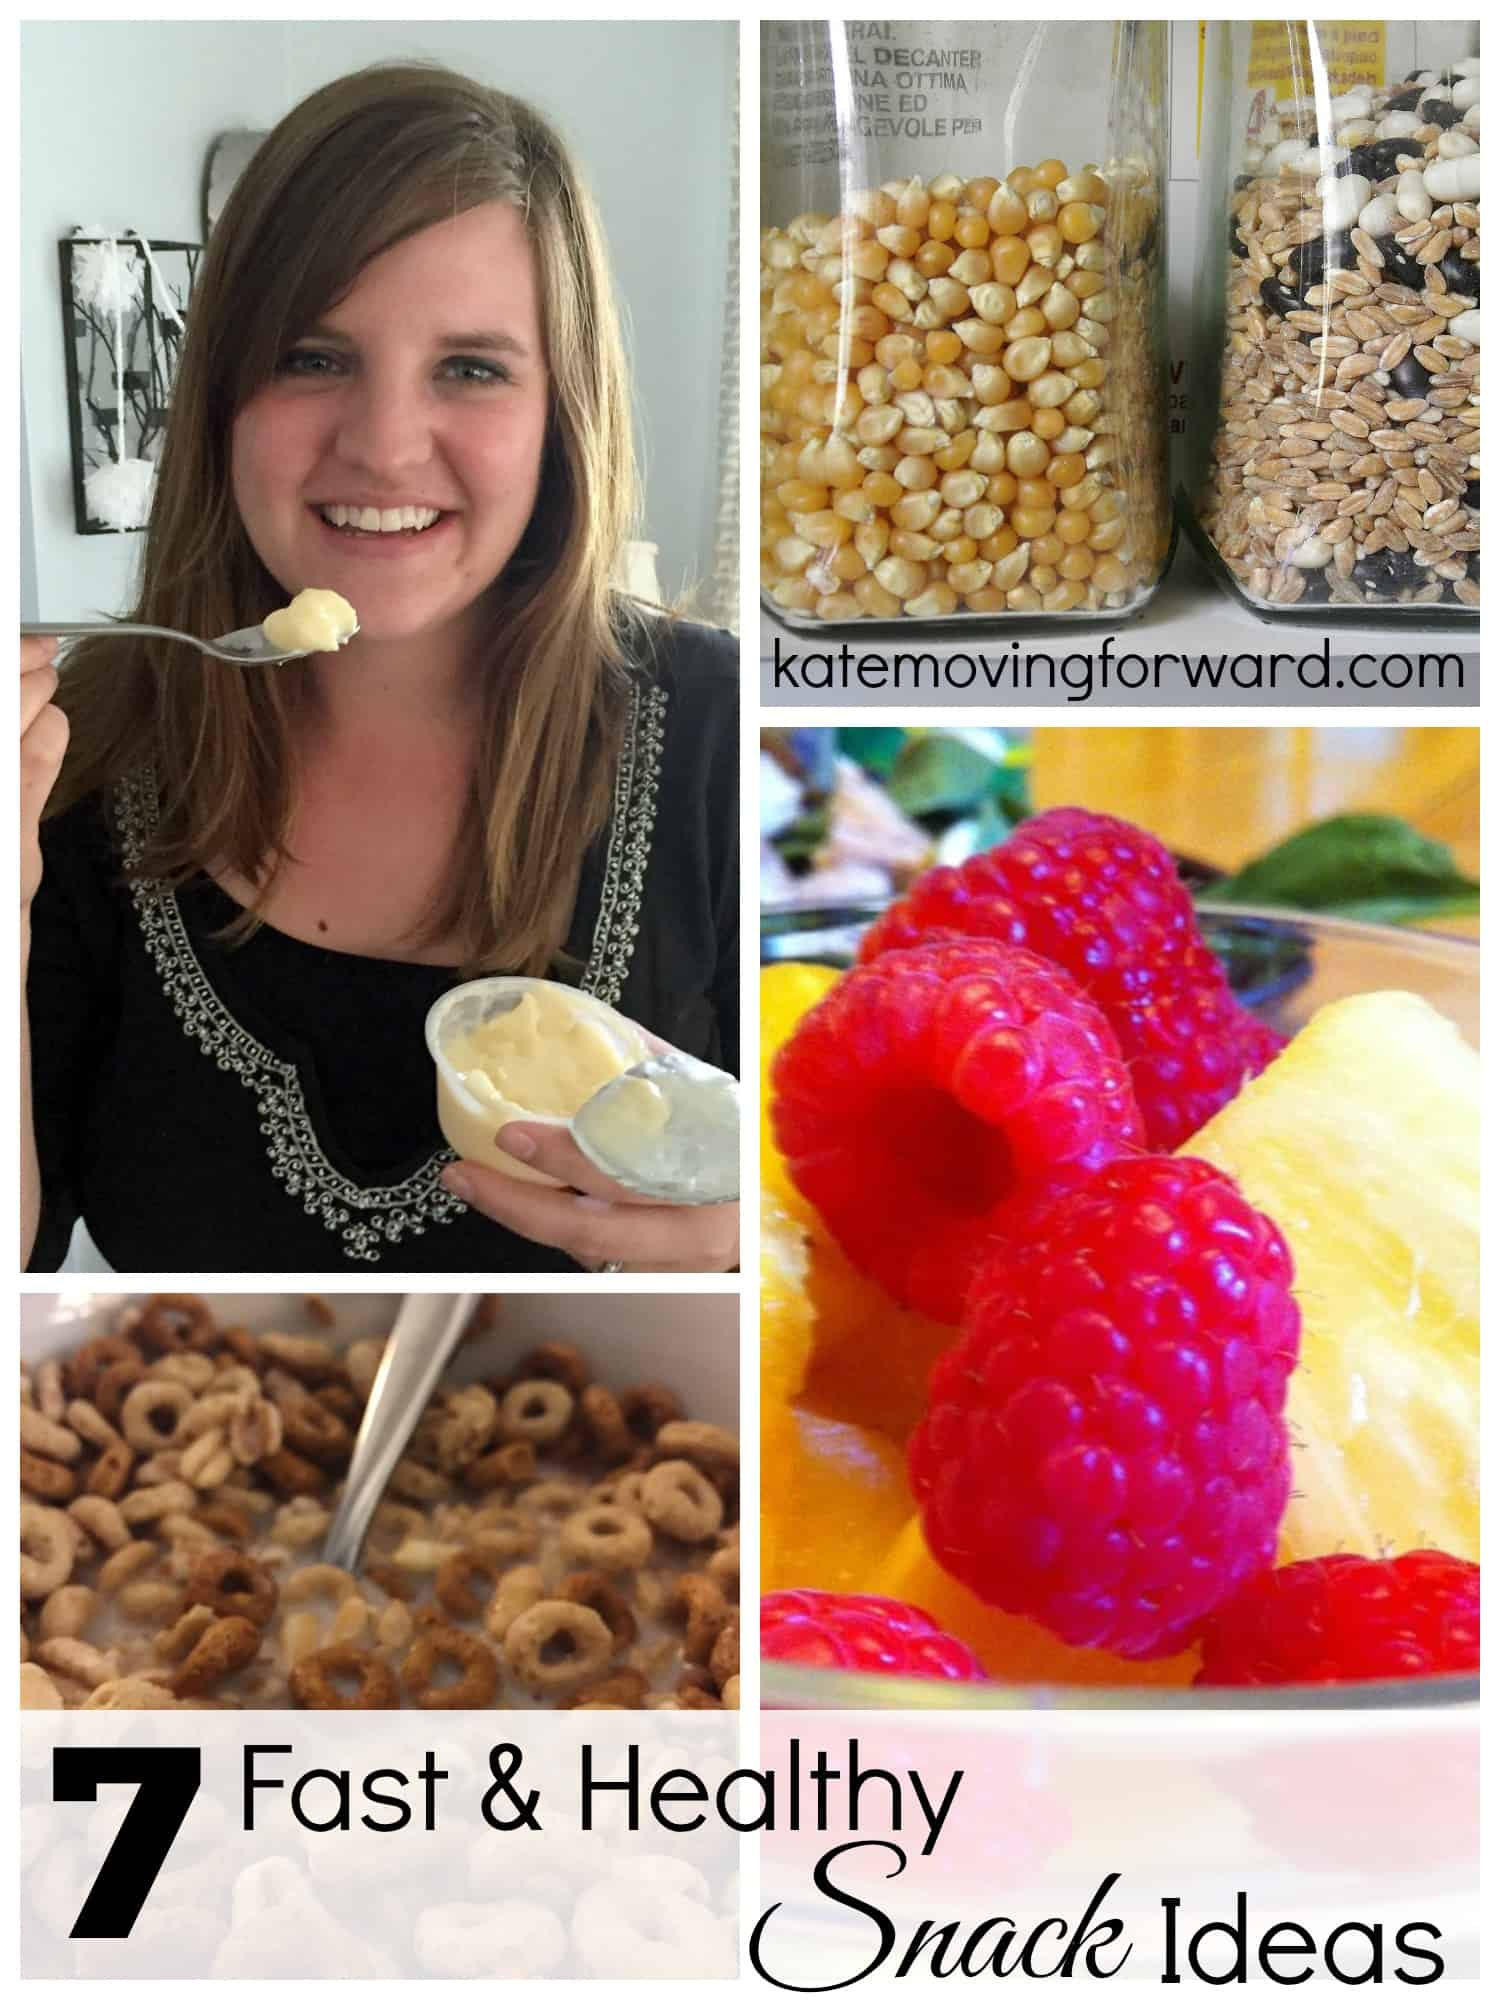 7 Fast & Healthy Snack Ideas